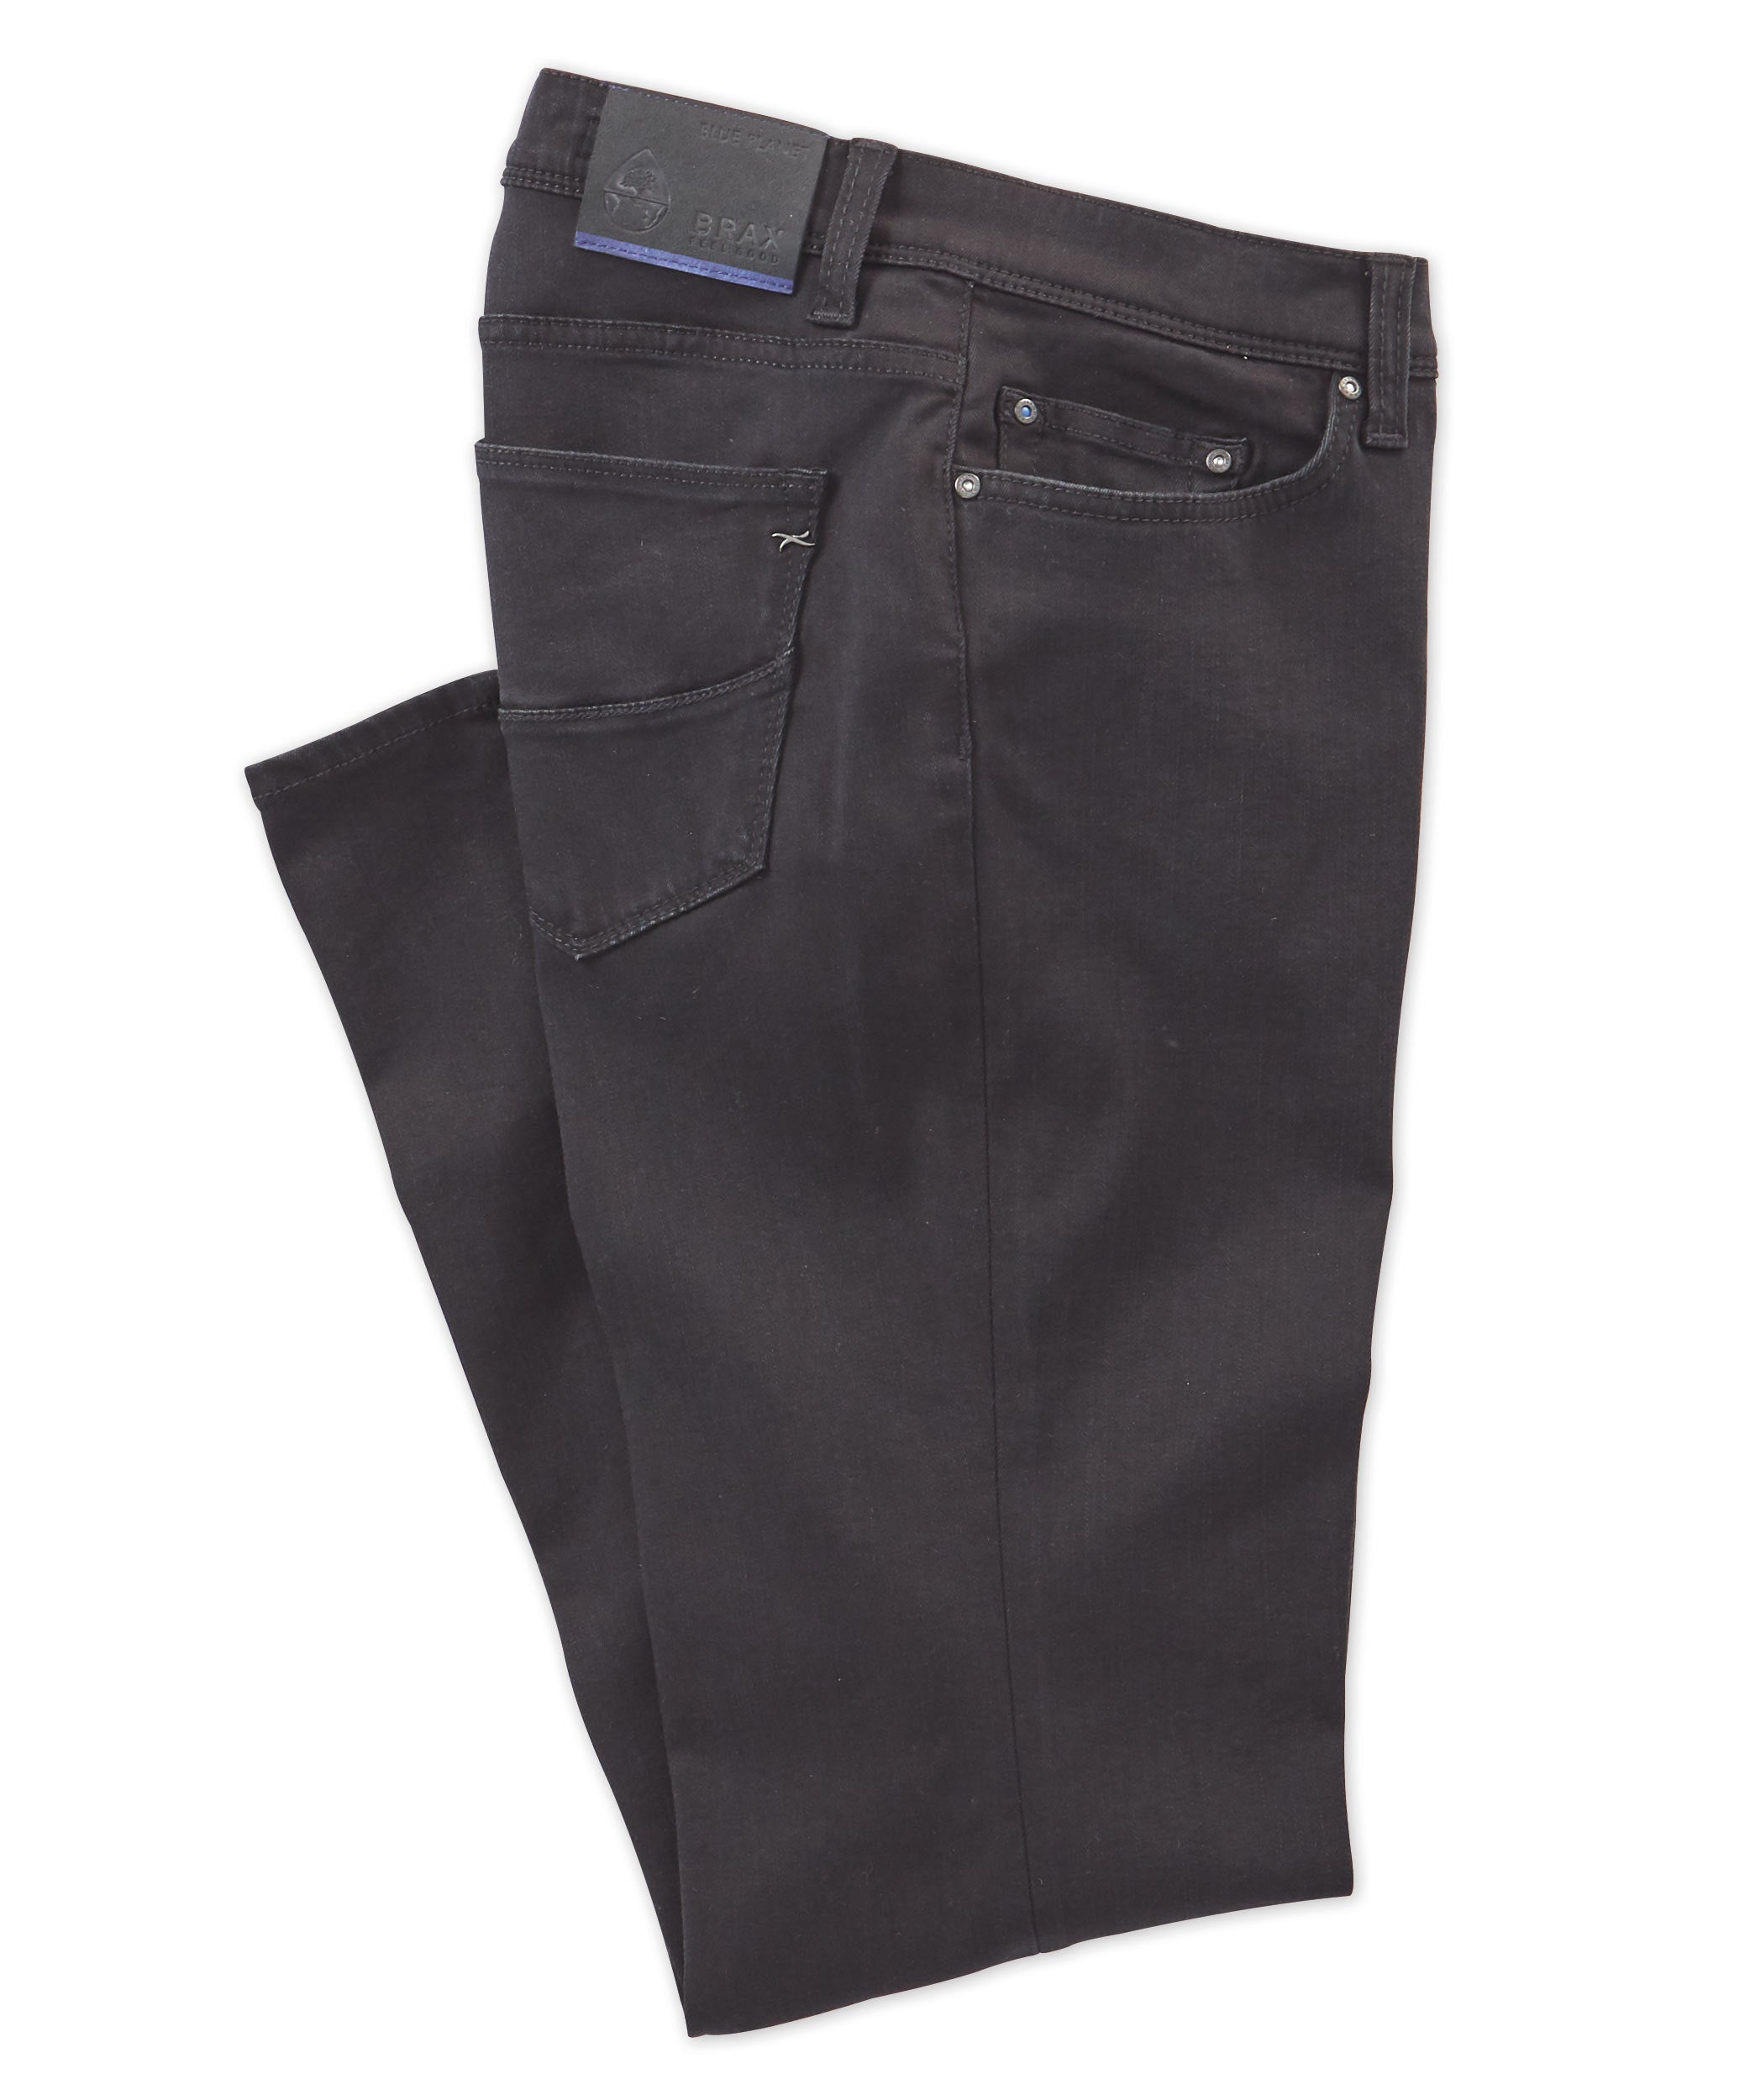 Brax Blue Planet Stretch Jean